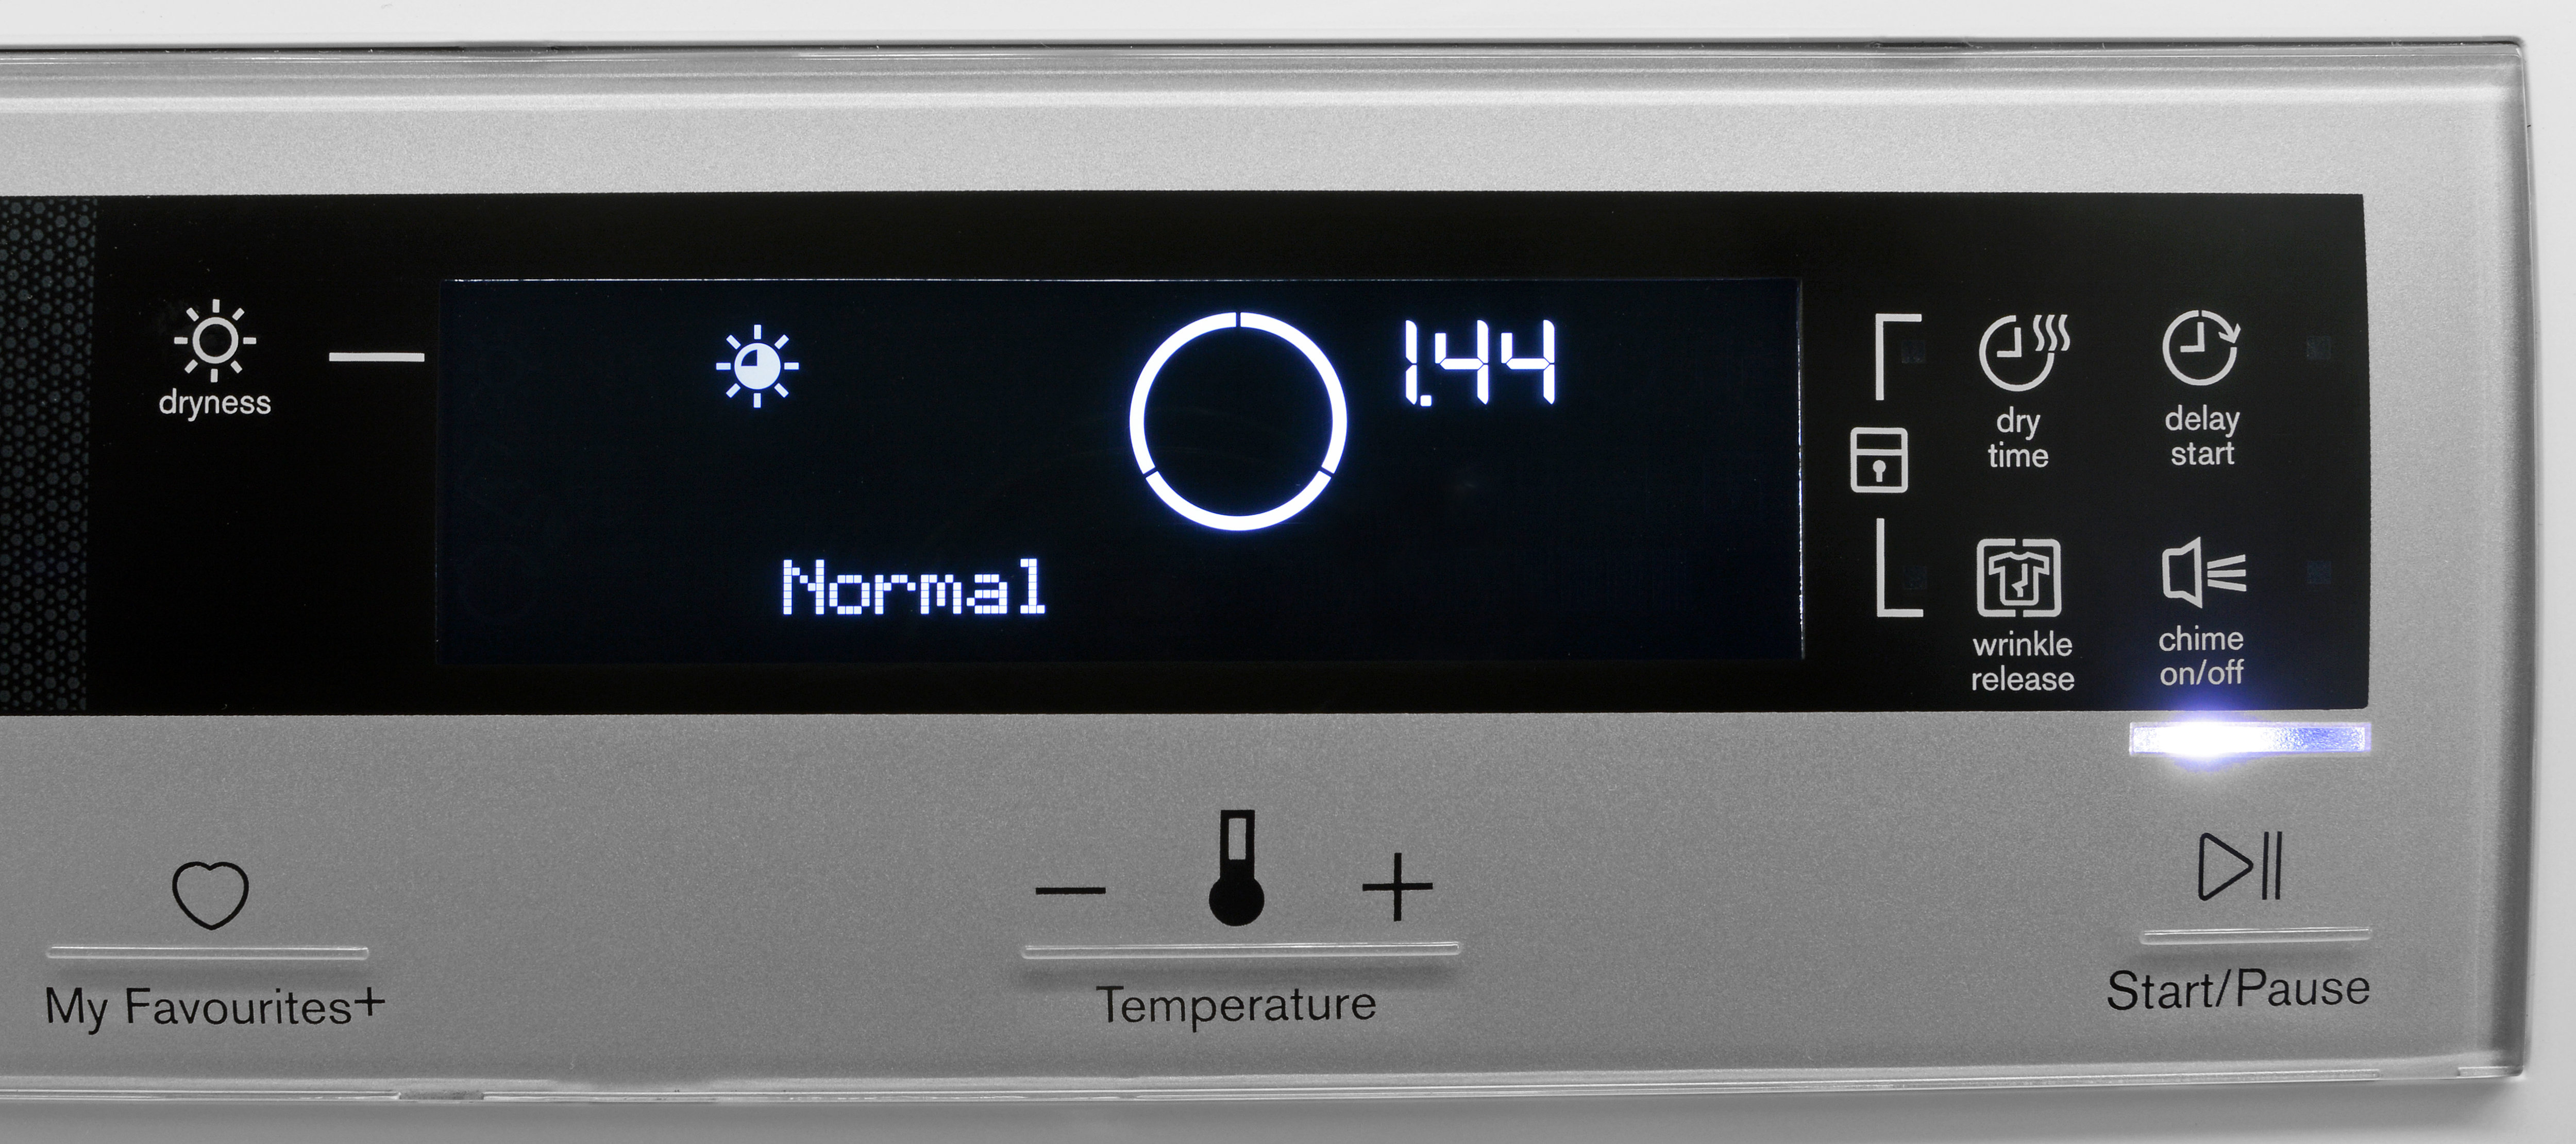 The Electrolux EIED200QSW's controls are very easy to read, but could be more responsive.